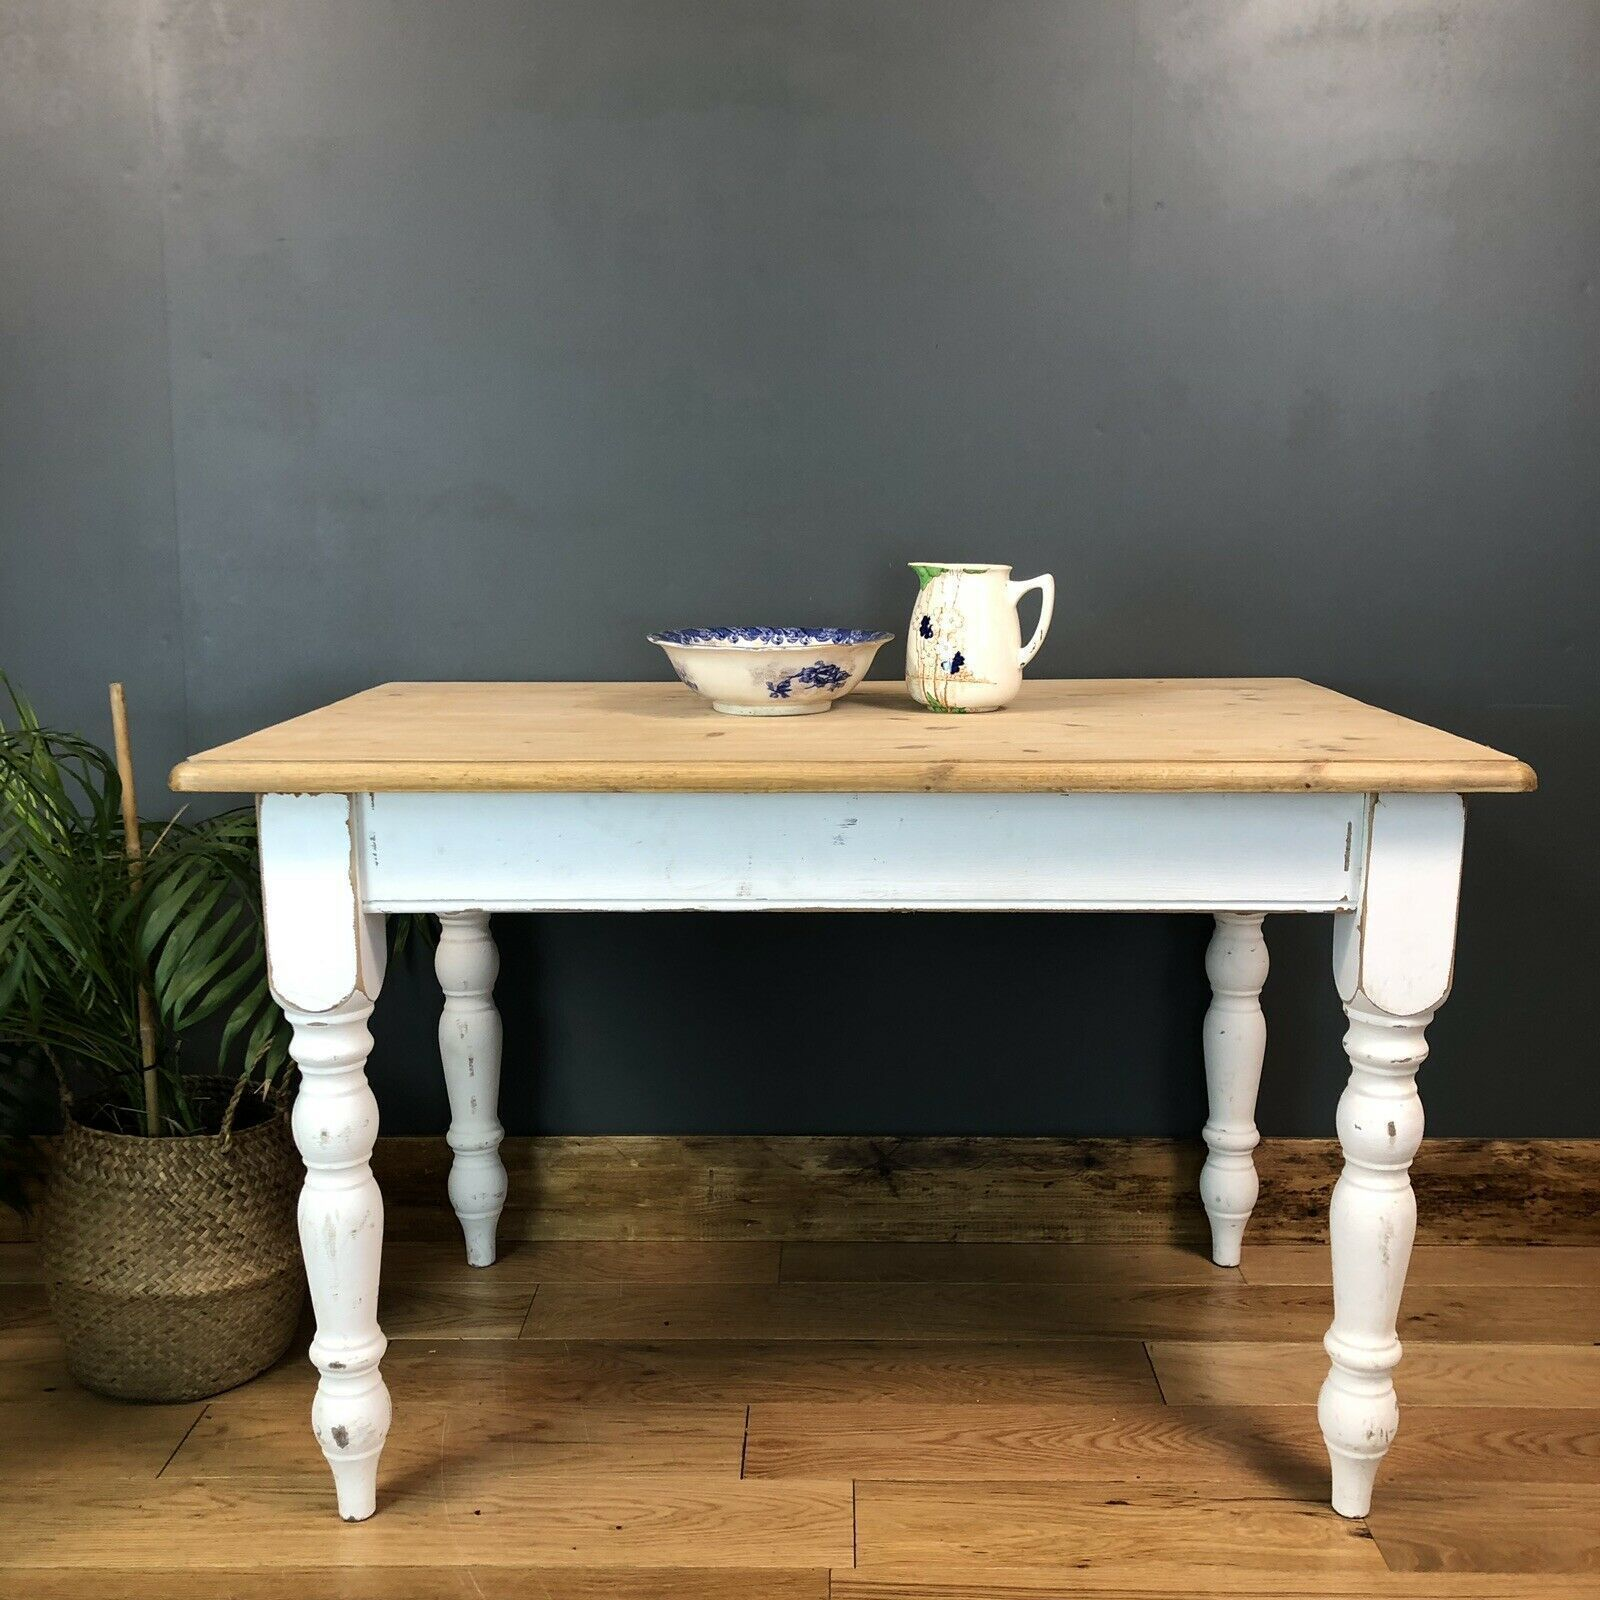 Rustic Painted Pine Table Farmhouse Country White Kitchen Dining